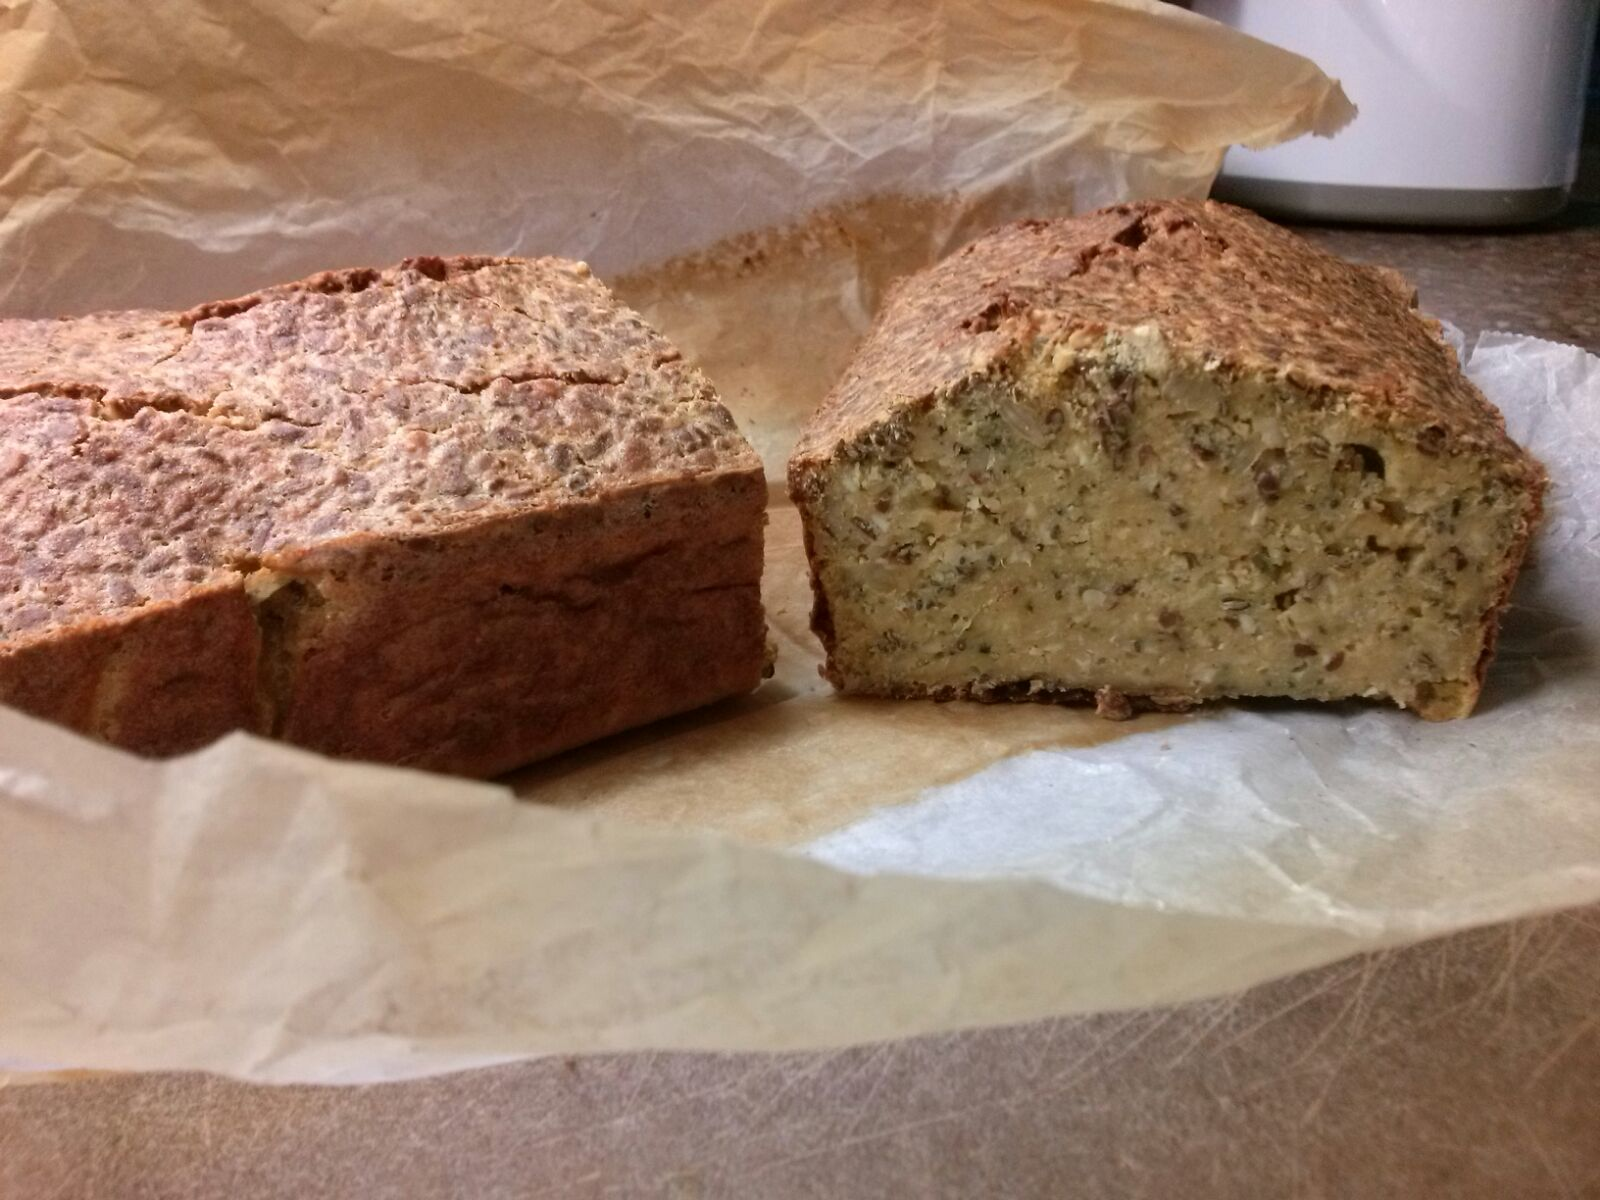 Recept voor Superfood eiwitrijk brood uit Jamie's Superfood